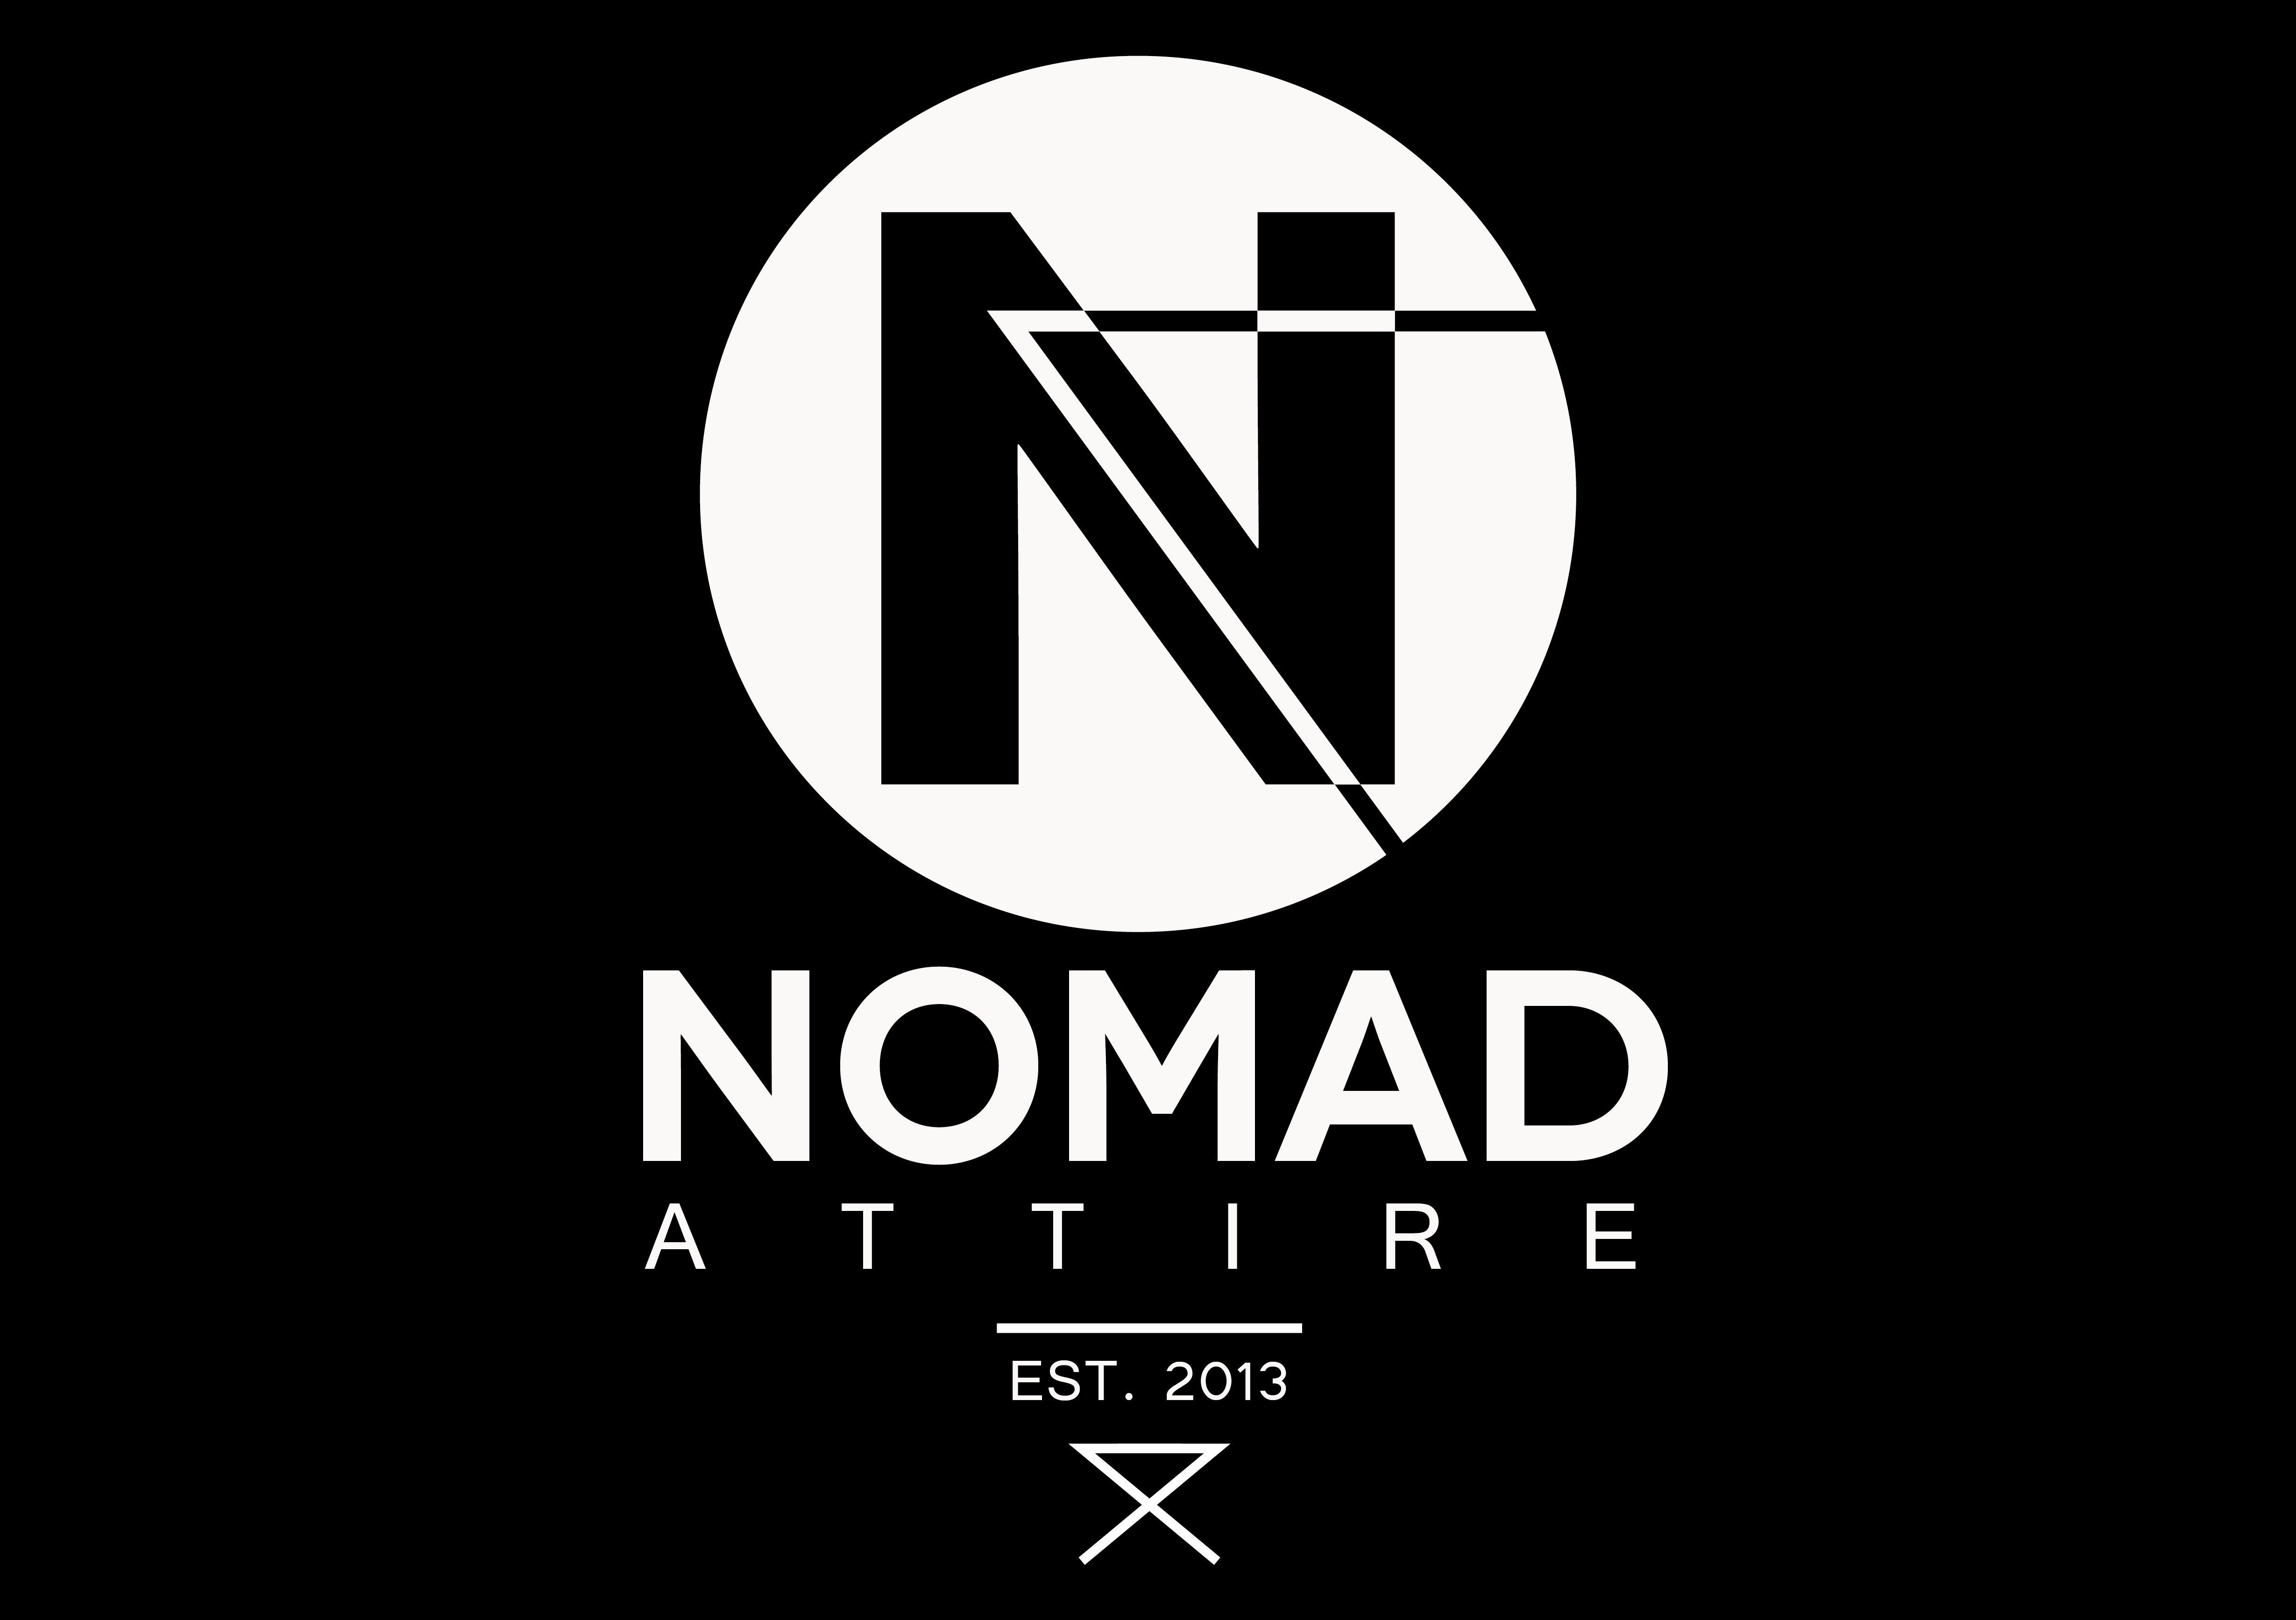 Logo Design with a dark background for Clothing Company Nomad Attire. Made by Jon Glanville - Plymouth Graphic Designer.""